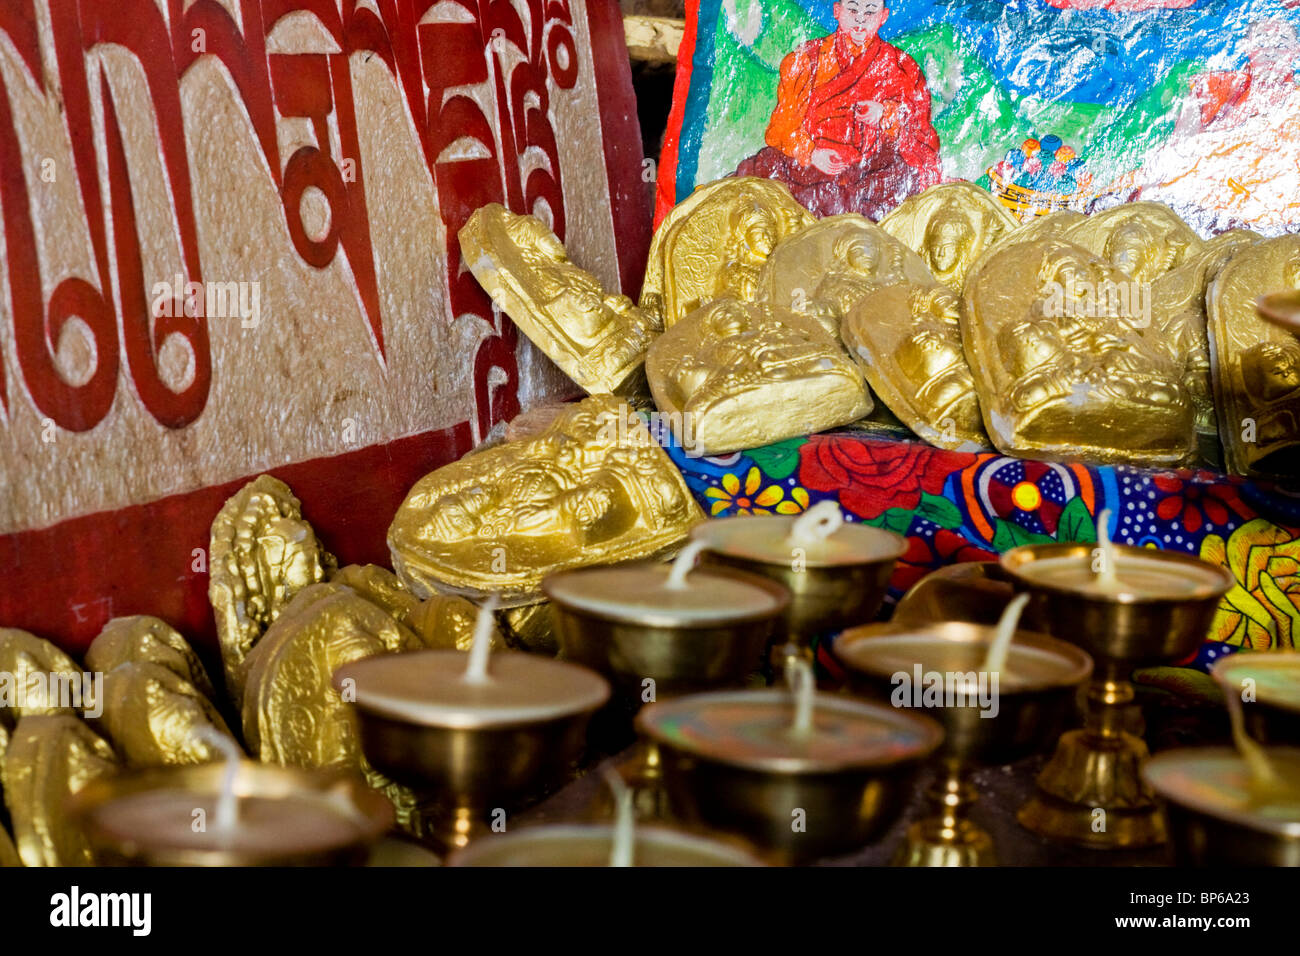 A collection of Buddhist items in a hermits cave near Lake Namsto, Tibet - Stock Image